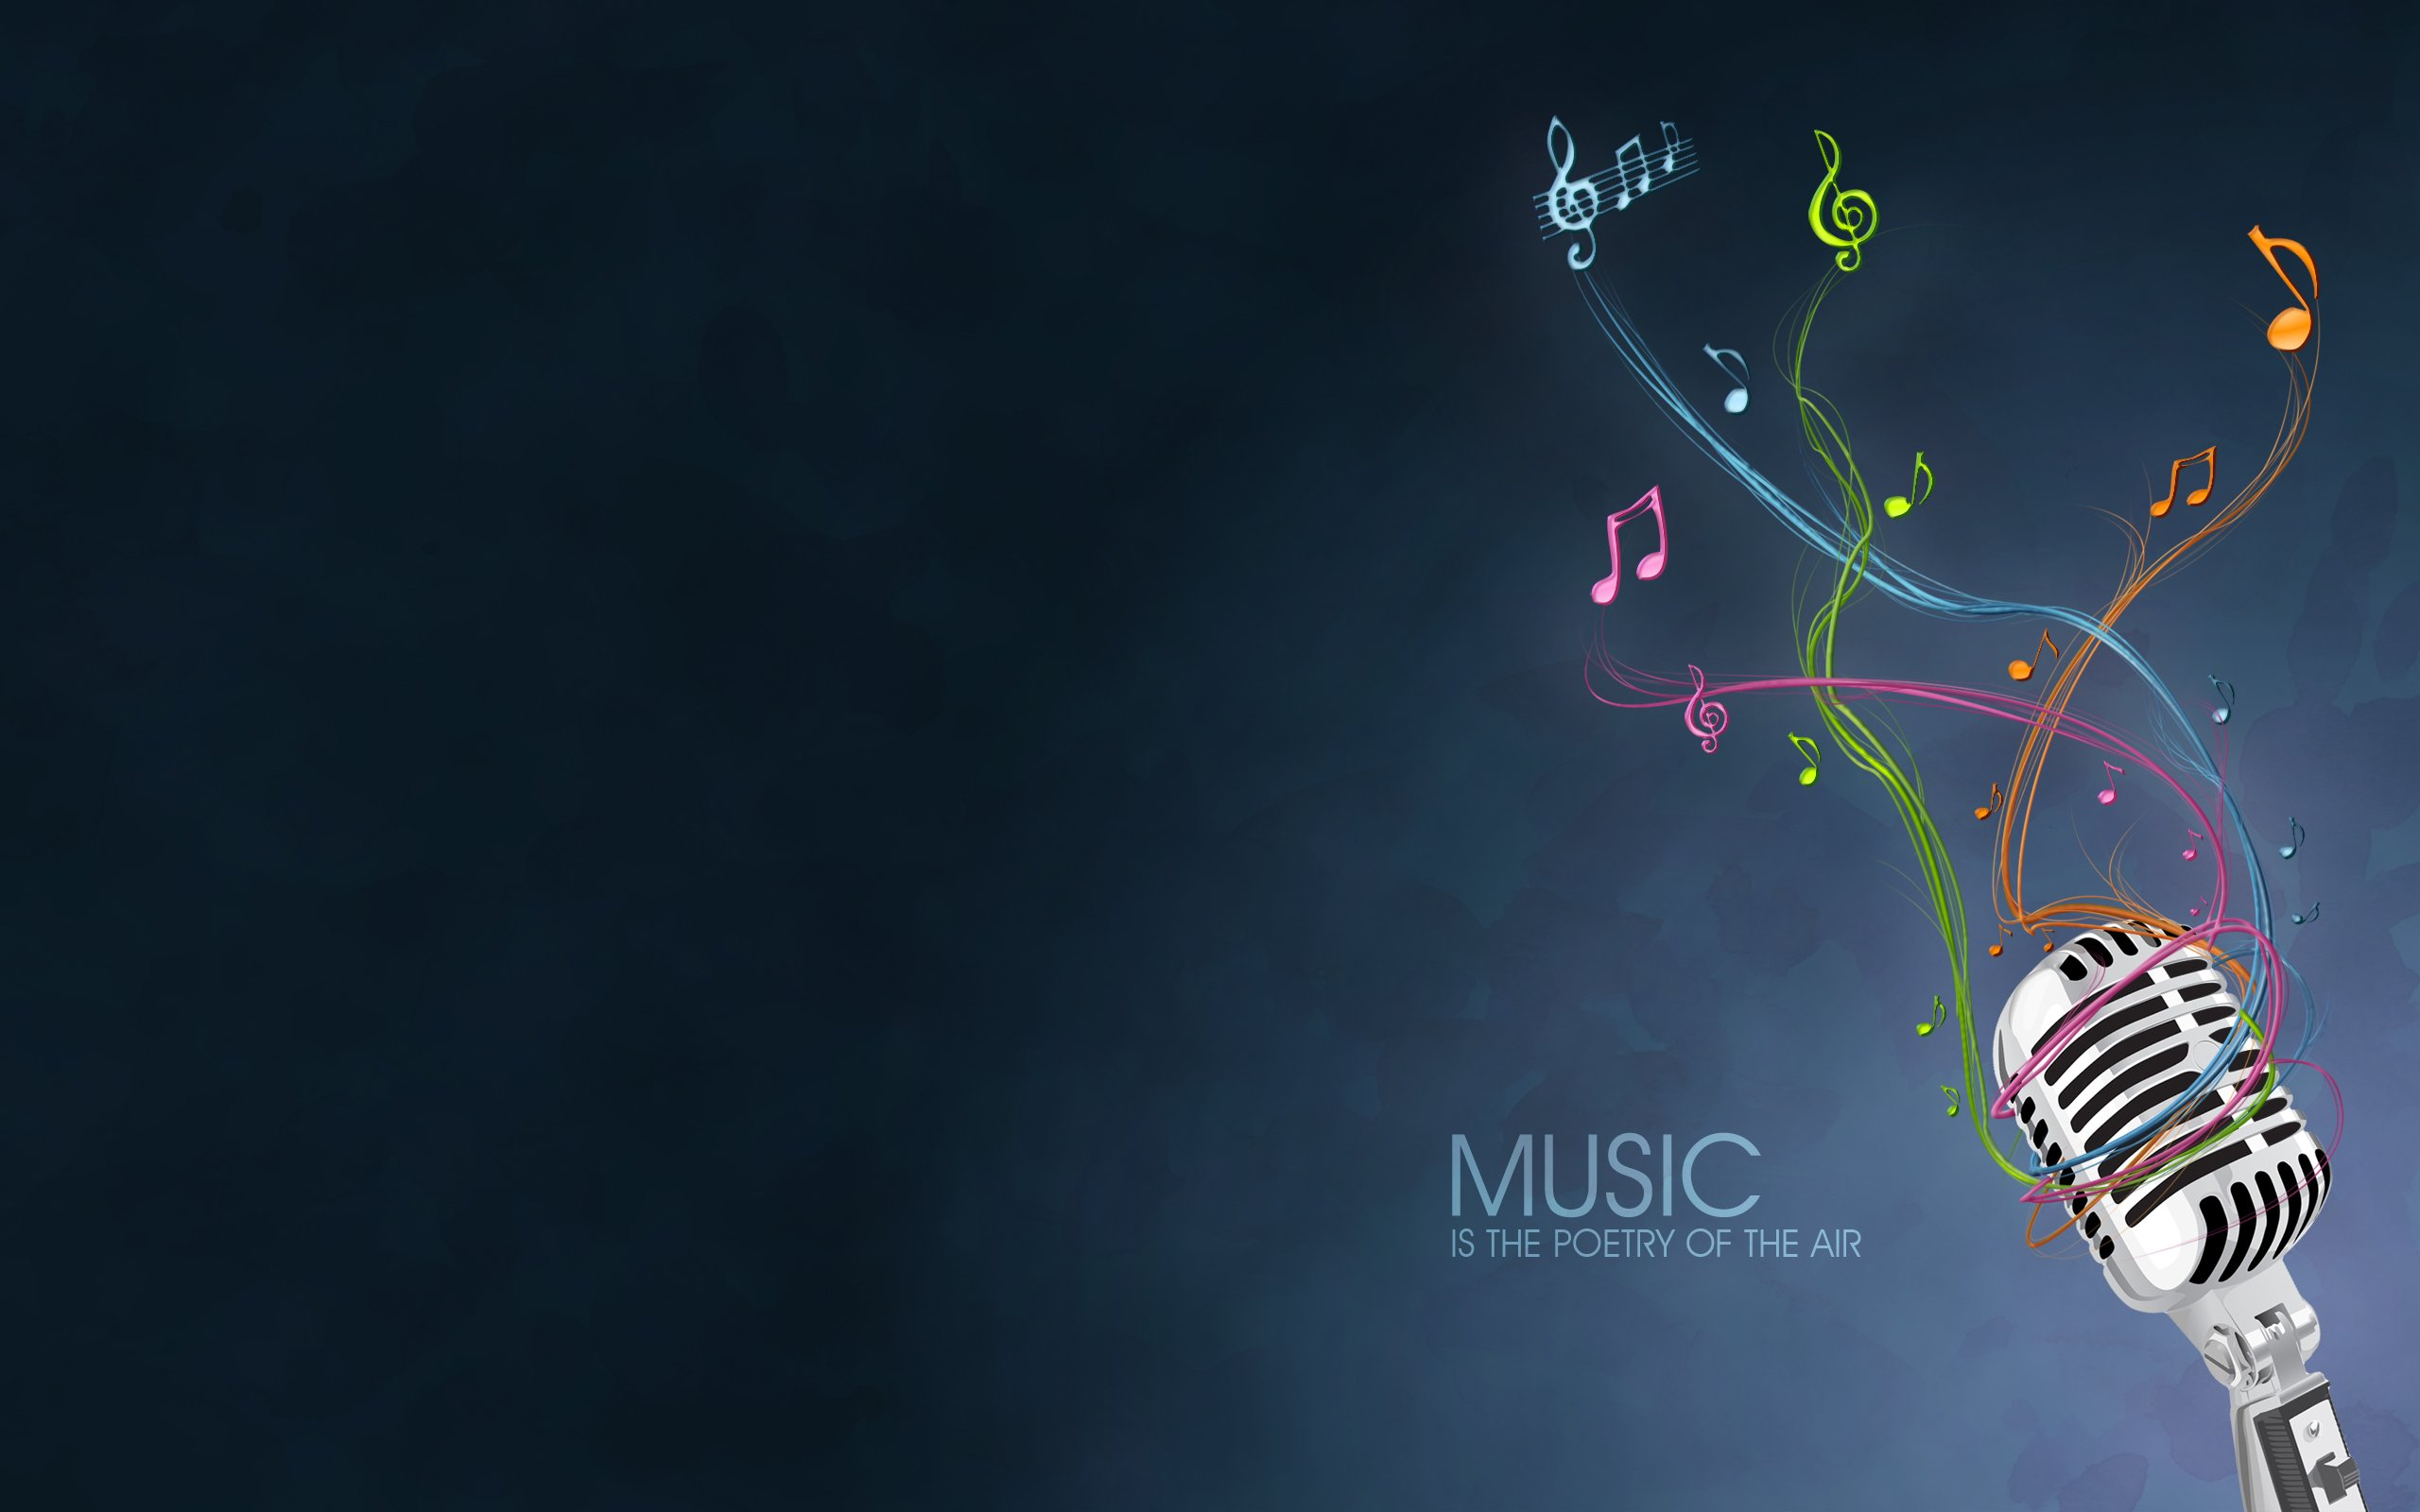 Music Notes Wallpaper 9815 Hd Wallpapers in Music   Imagescicom 2560x1600